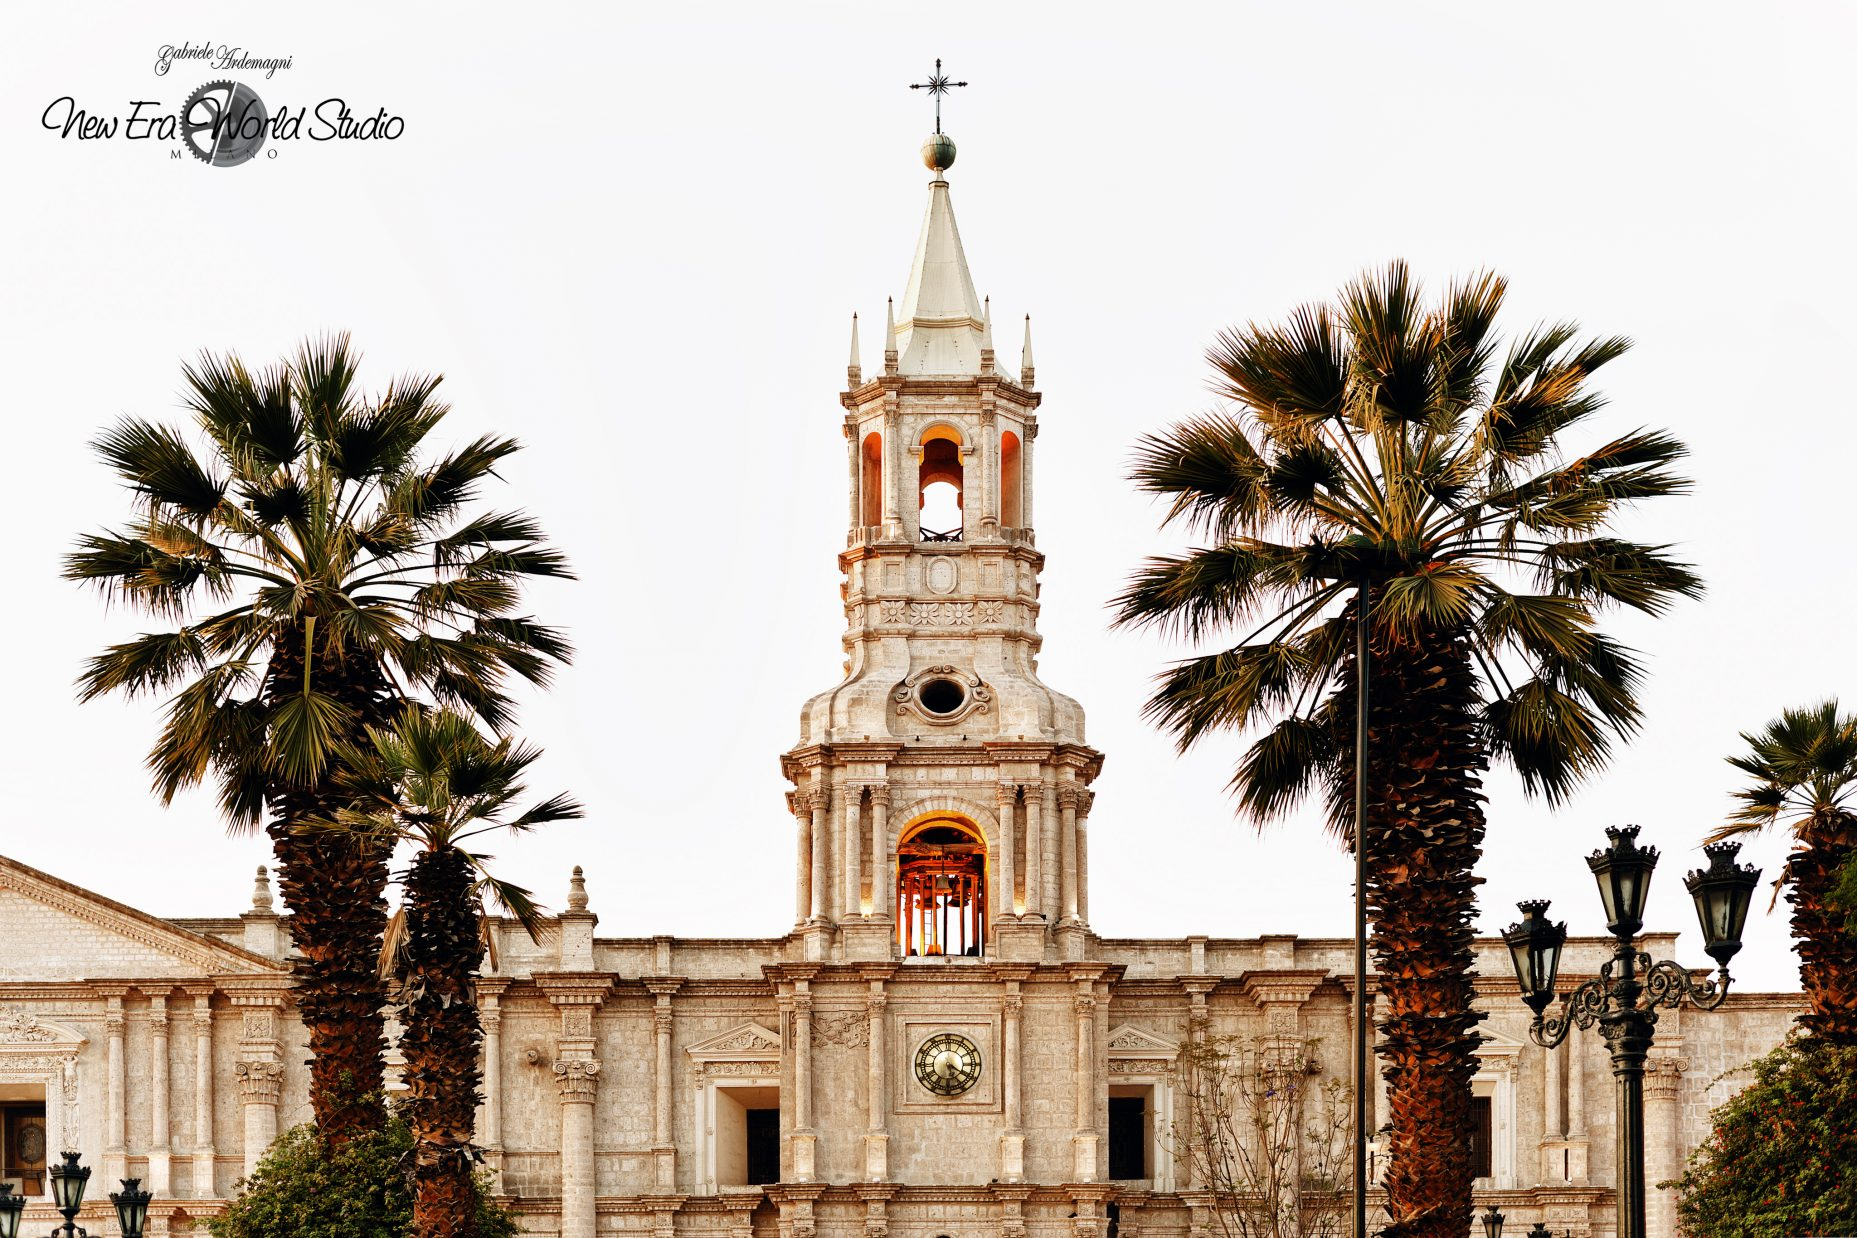 Arequipa Cathedral Perù Foto by Gabriele Ardemagni